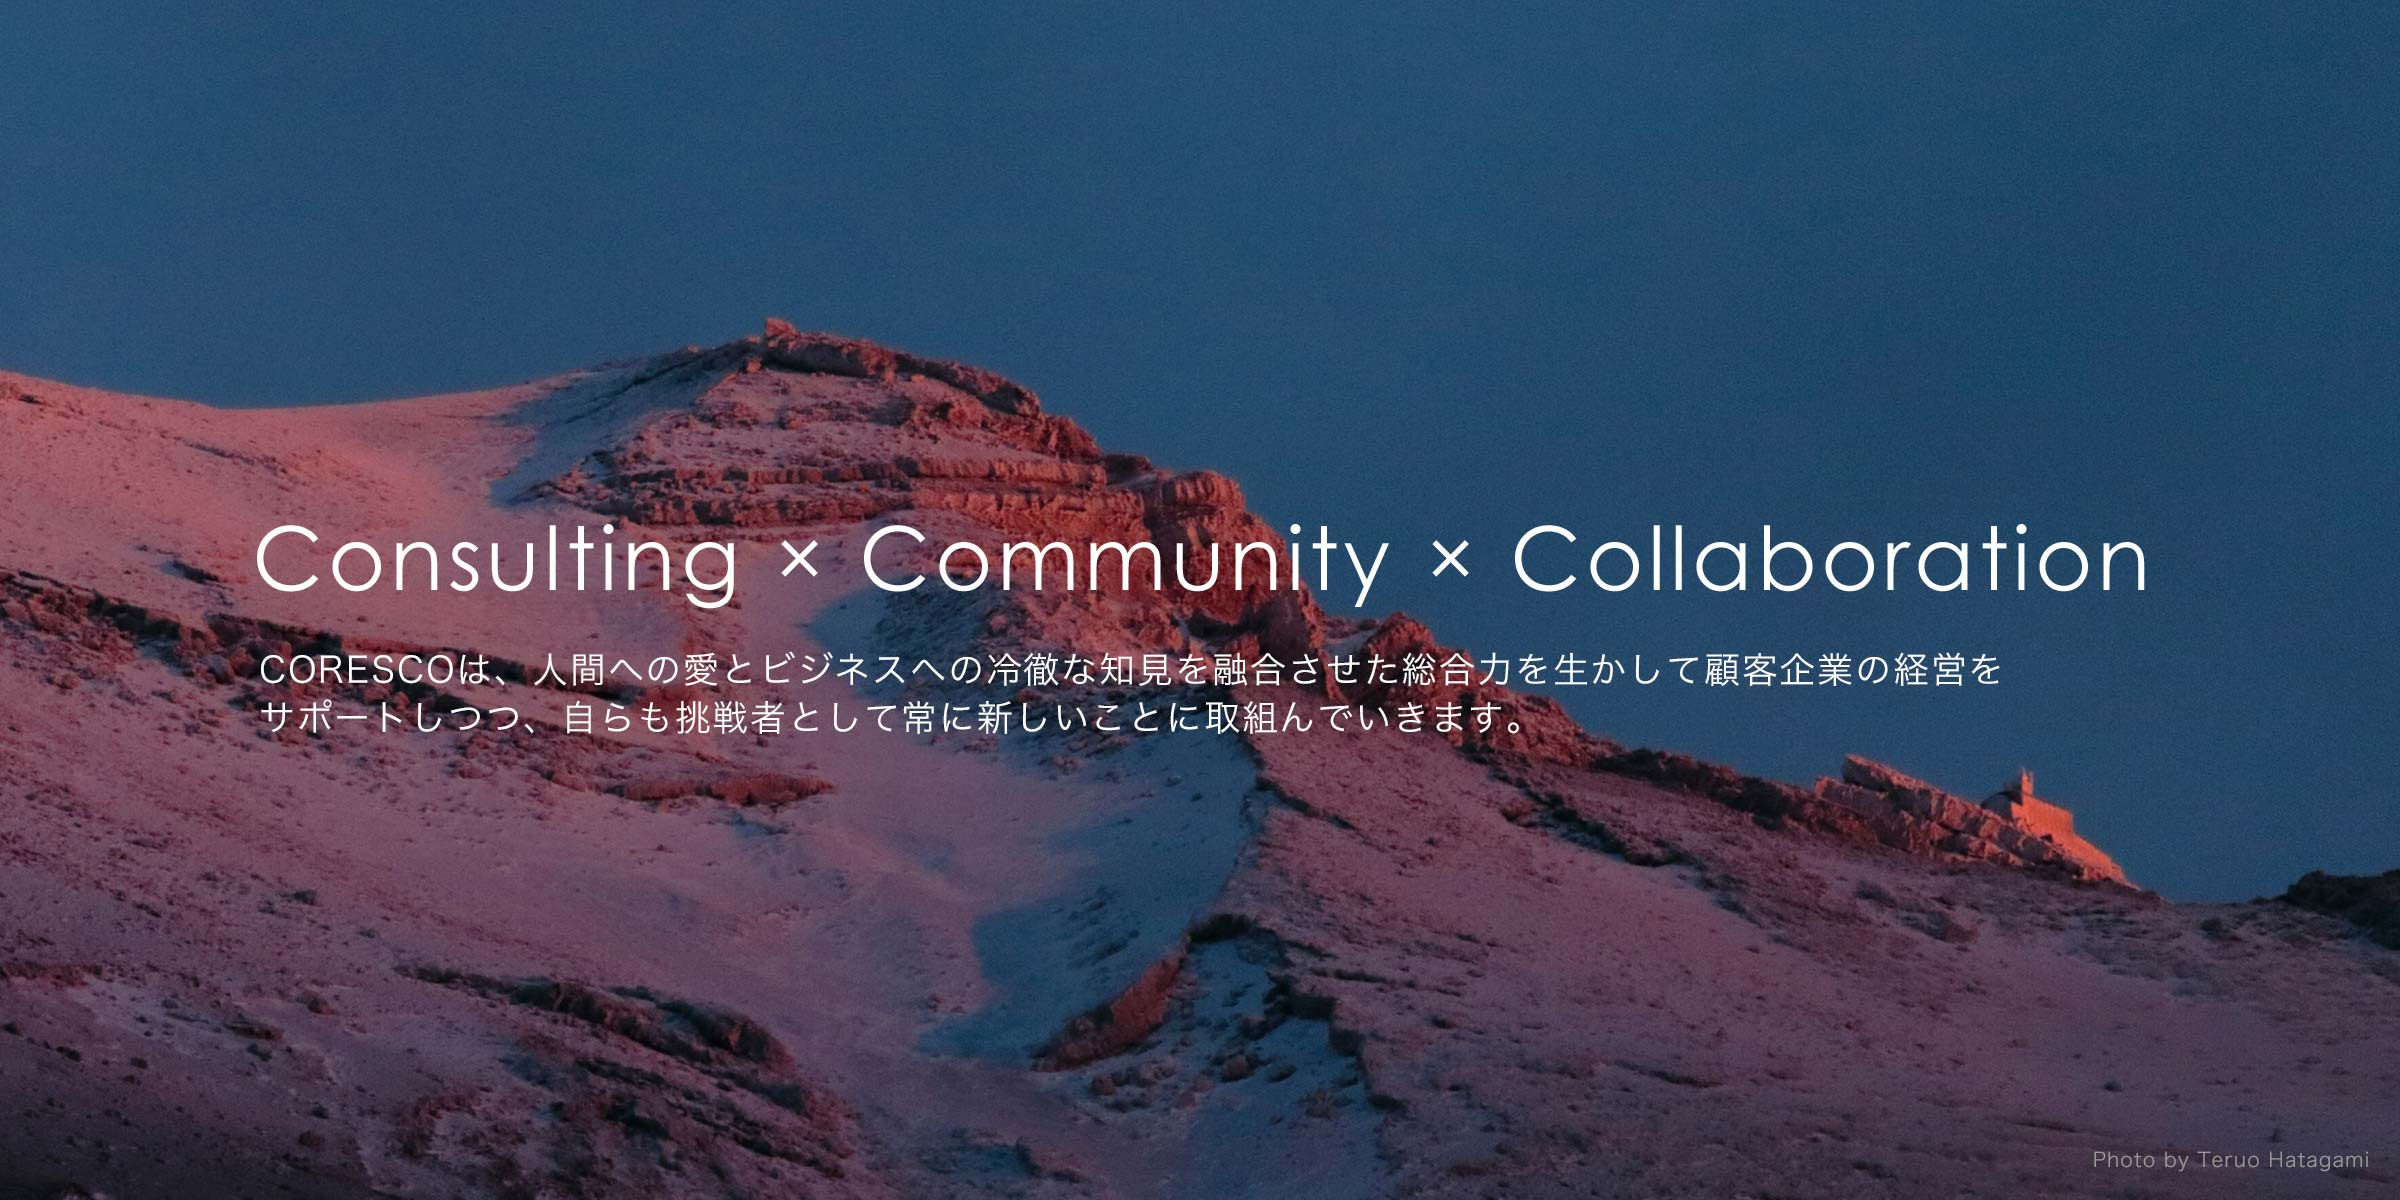 CORESCO | The Consulting Resources Company